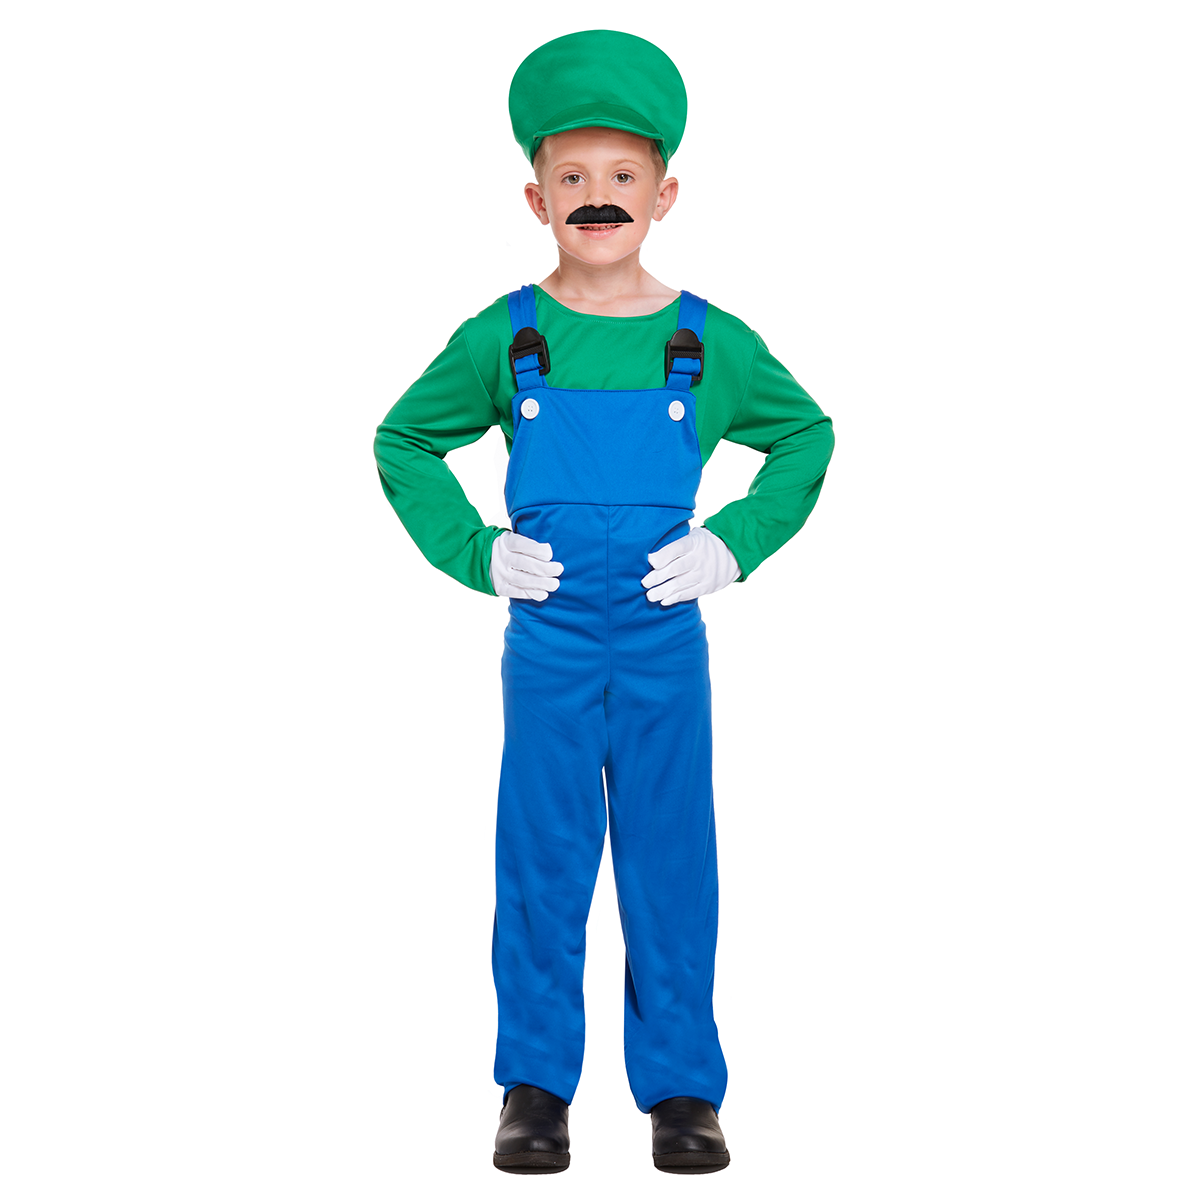 Children S Super Mario Bros Luigi Costume Kids Book Week Red Green